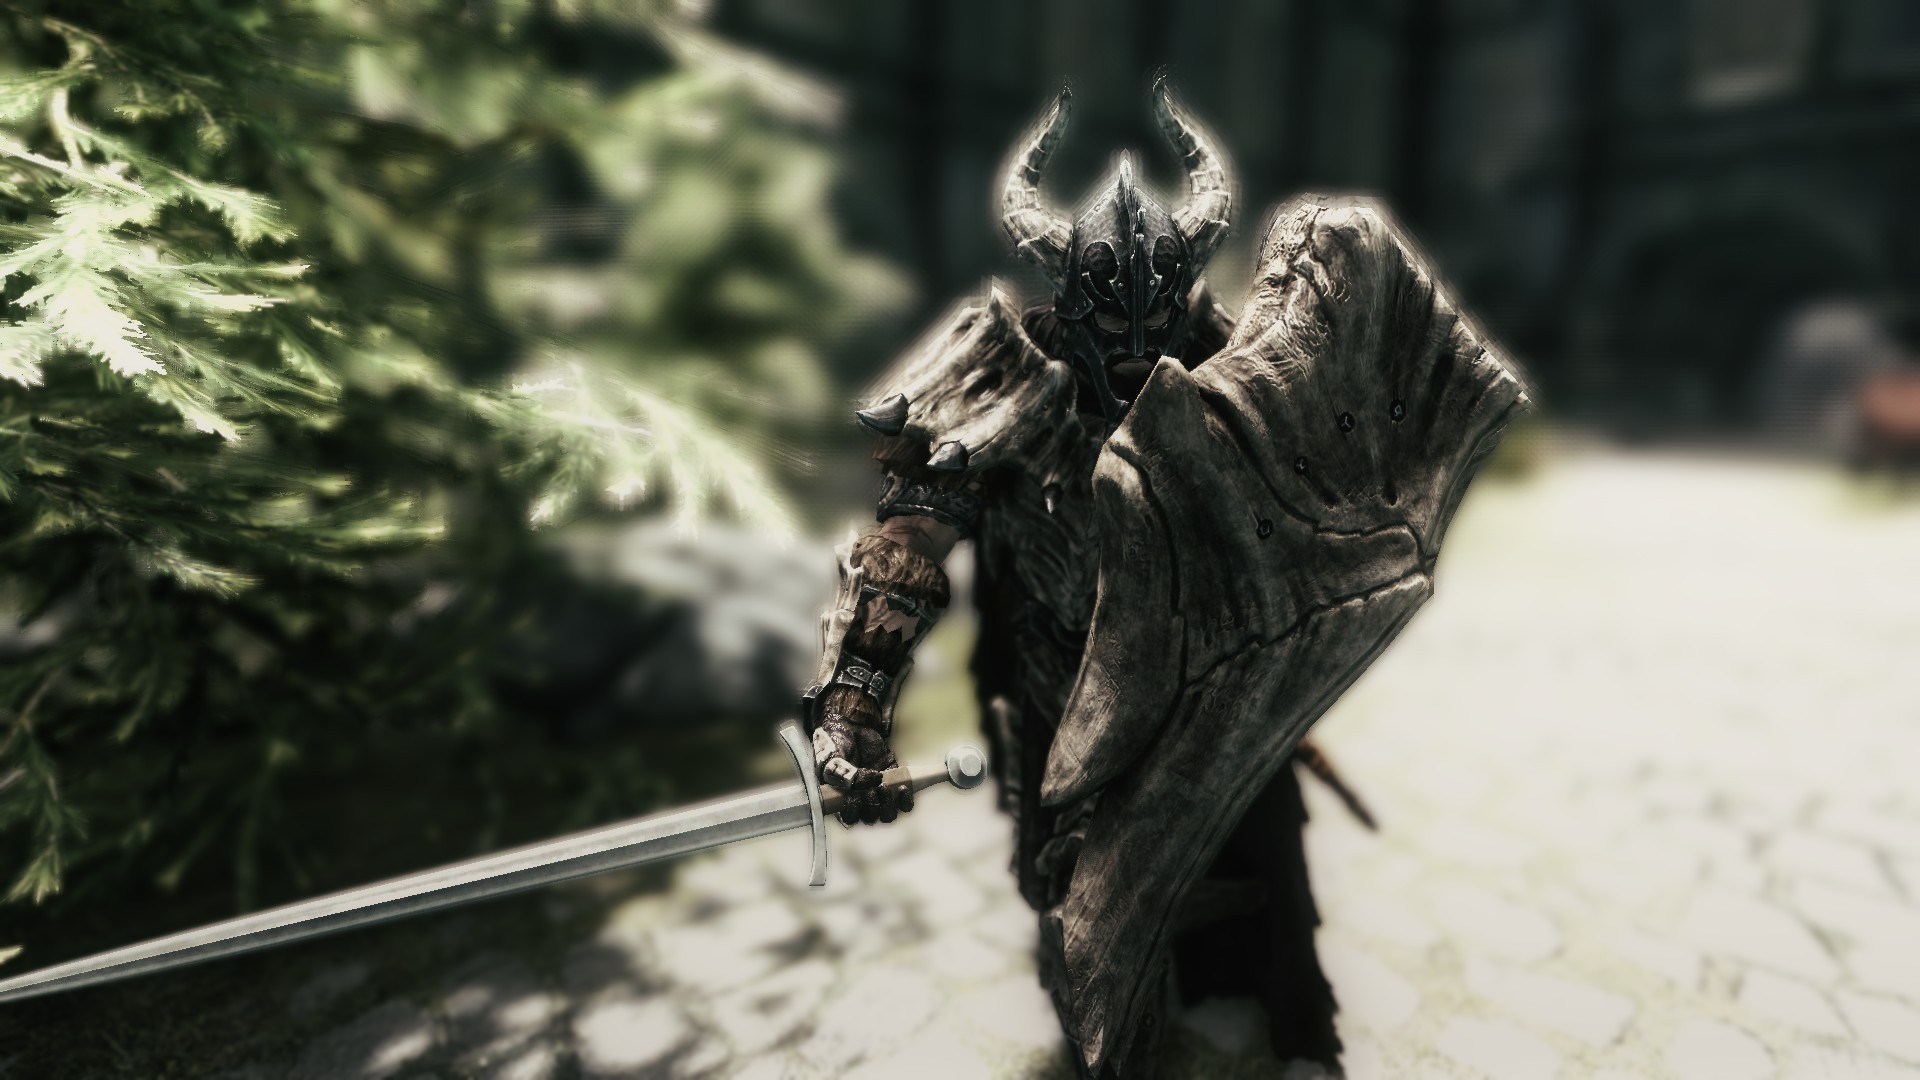 Dragon Plate Armor Enhancement Addon Elder Scrolls V Skyrim Mod Db Check out our dragon armor skyrim selection for the very best in unique or custom, handmade pieces from our shops. dragon plate armor enhancement addon